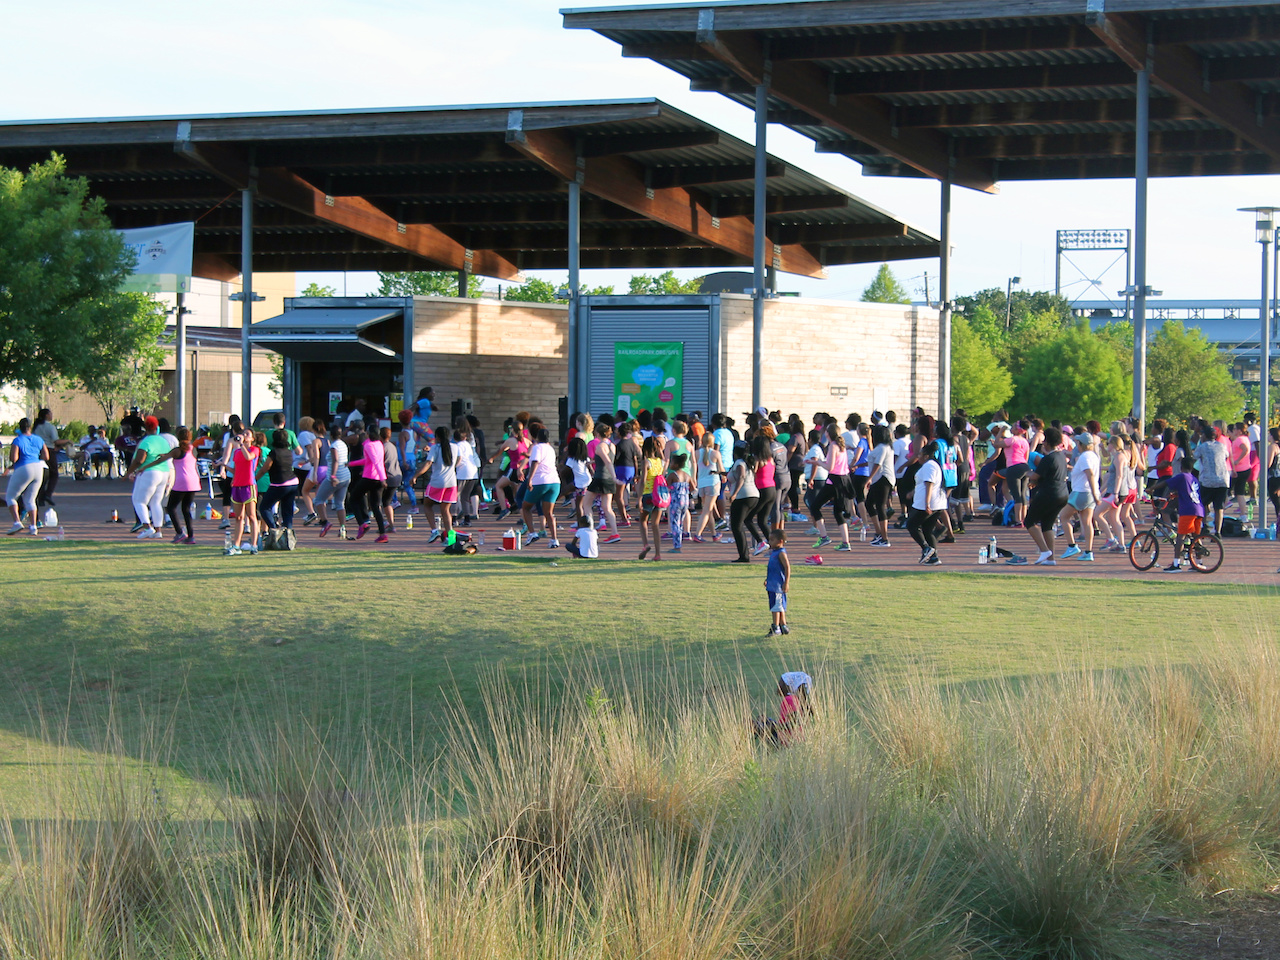 A Zumba class takes place on the shady pavilion at Railroad Park.